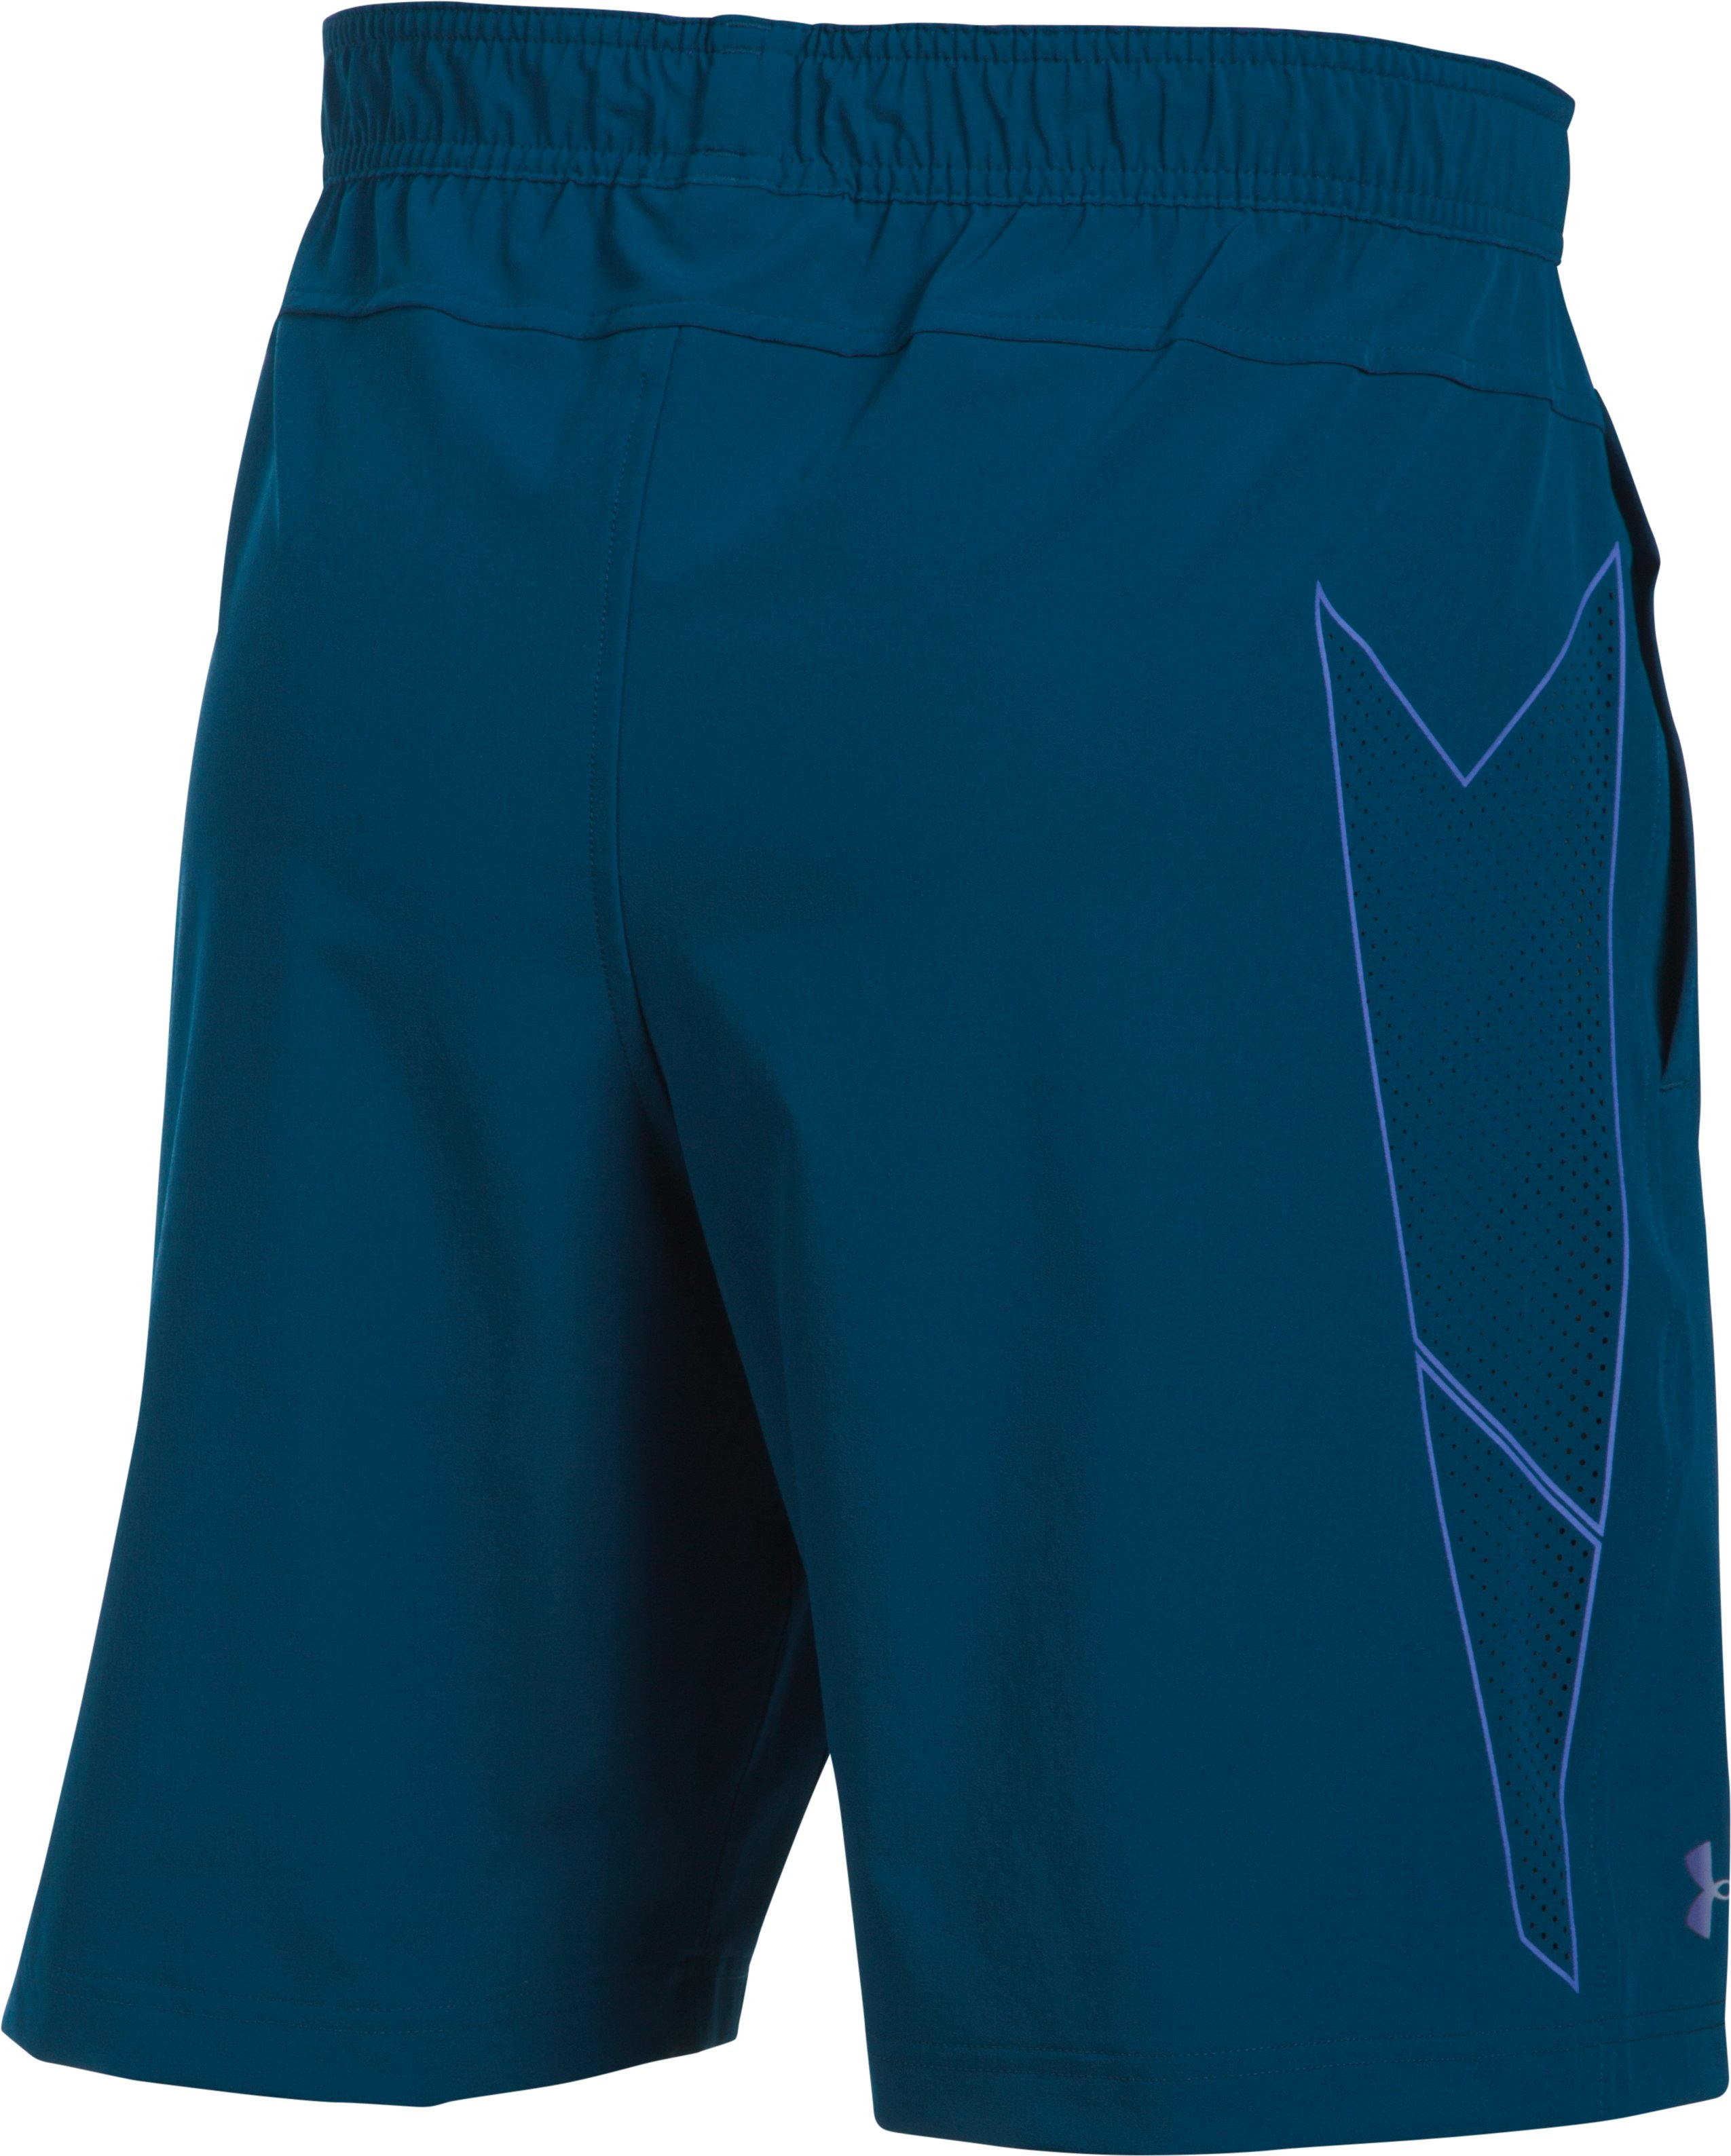 Men's UA Storm Vortex Shorts, BLACKOUT NAVY, undefined